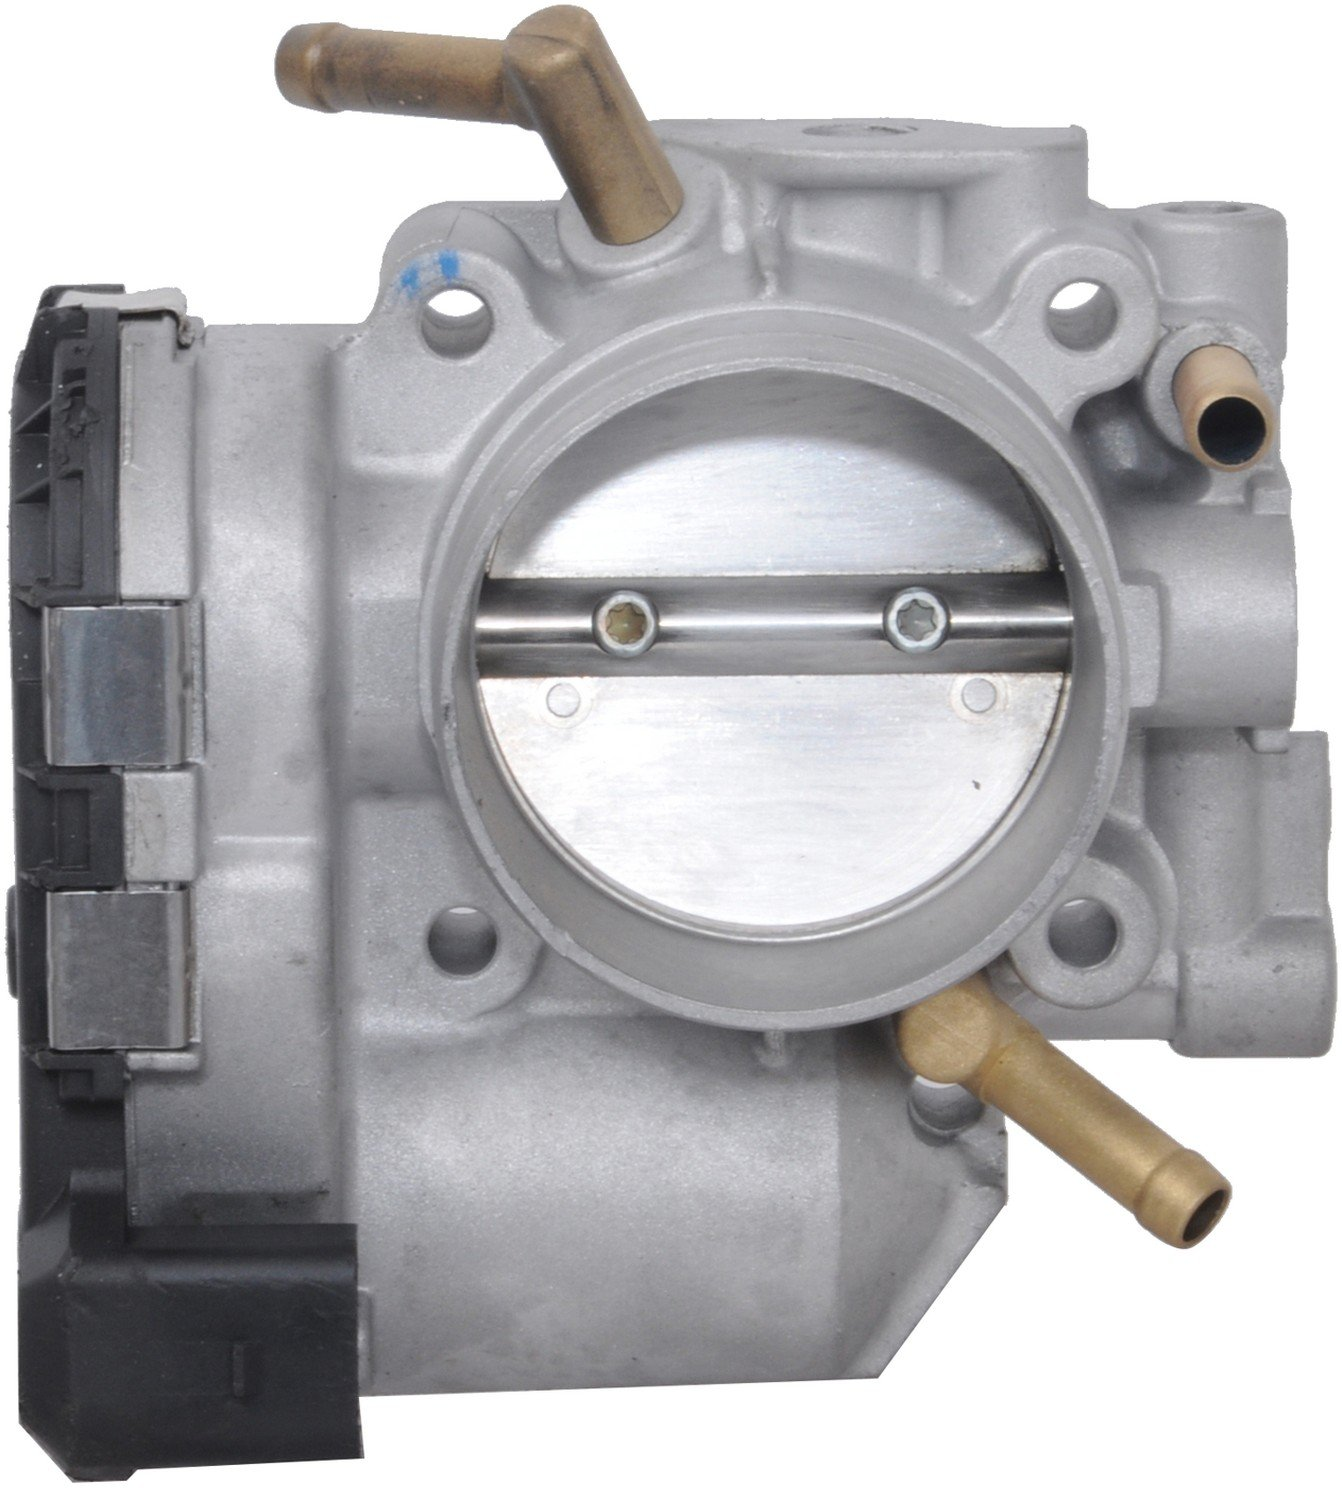 A1 Cardone 67-4006 Remanufactured Throttle Body, 1 Pack